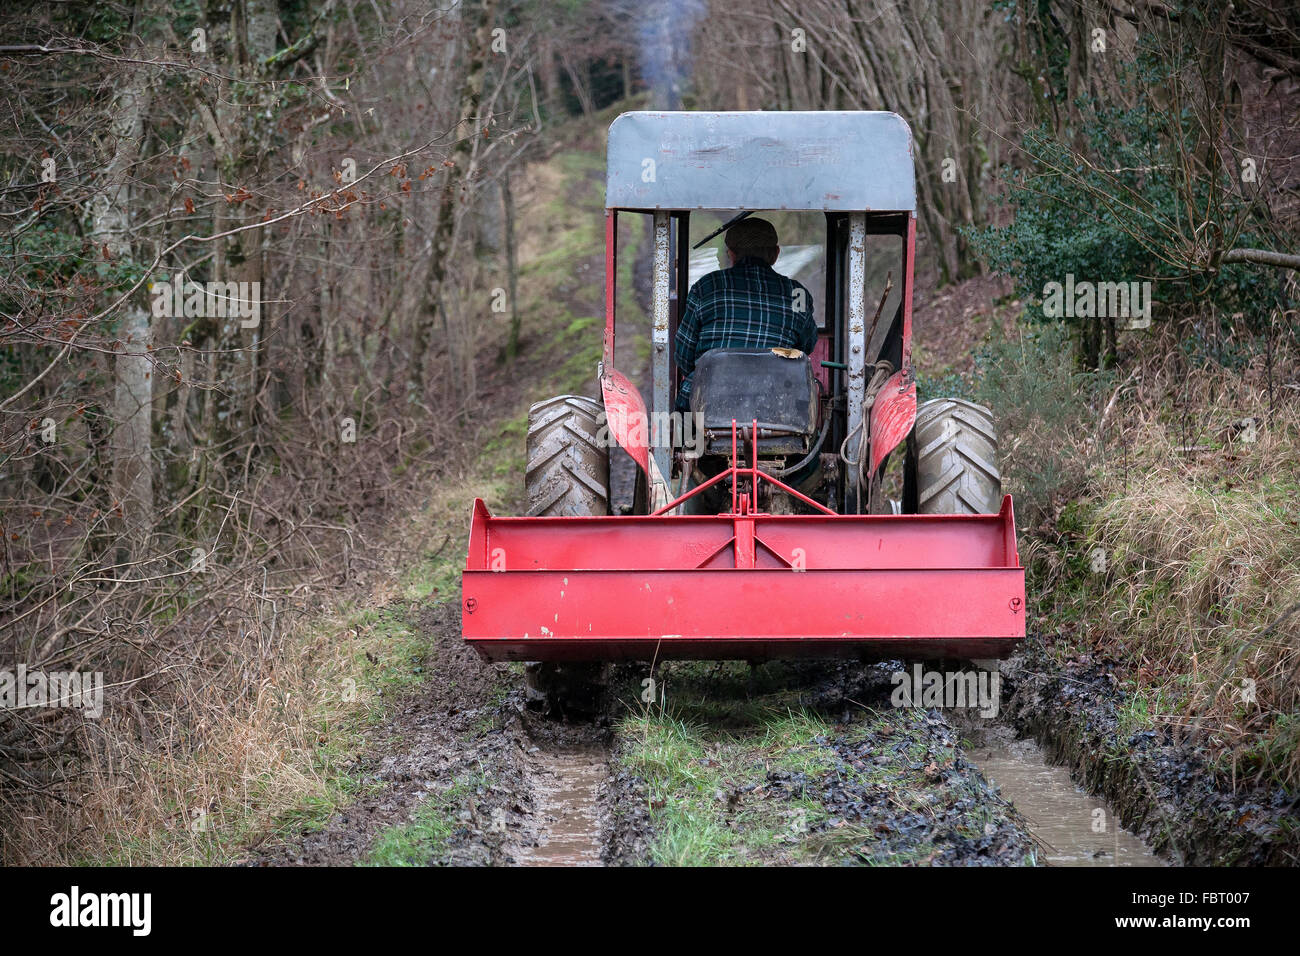 tractor tyre in muddy field, agriculture, agronomy, clay, cross-country, cultivated, dirt, dirty, drive, engine, - Stock Image